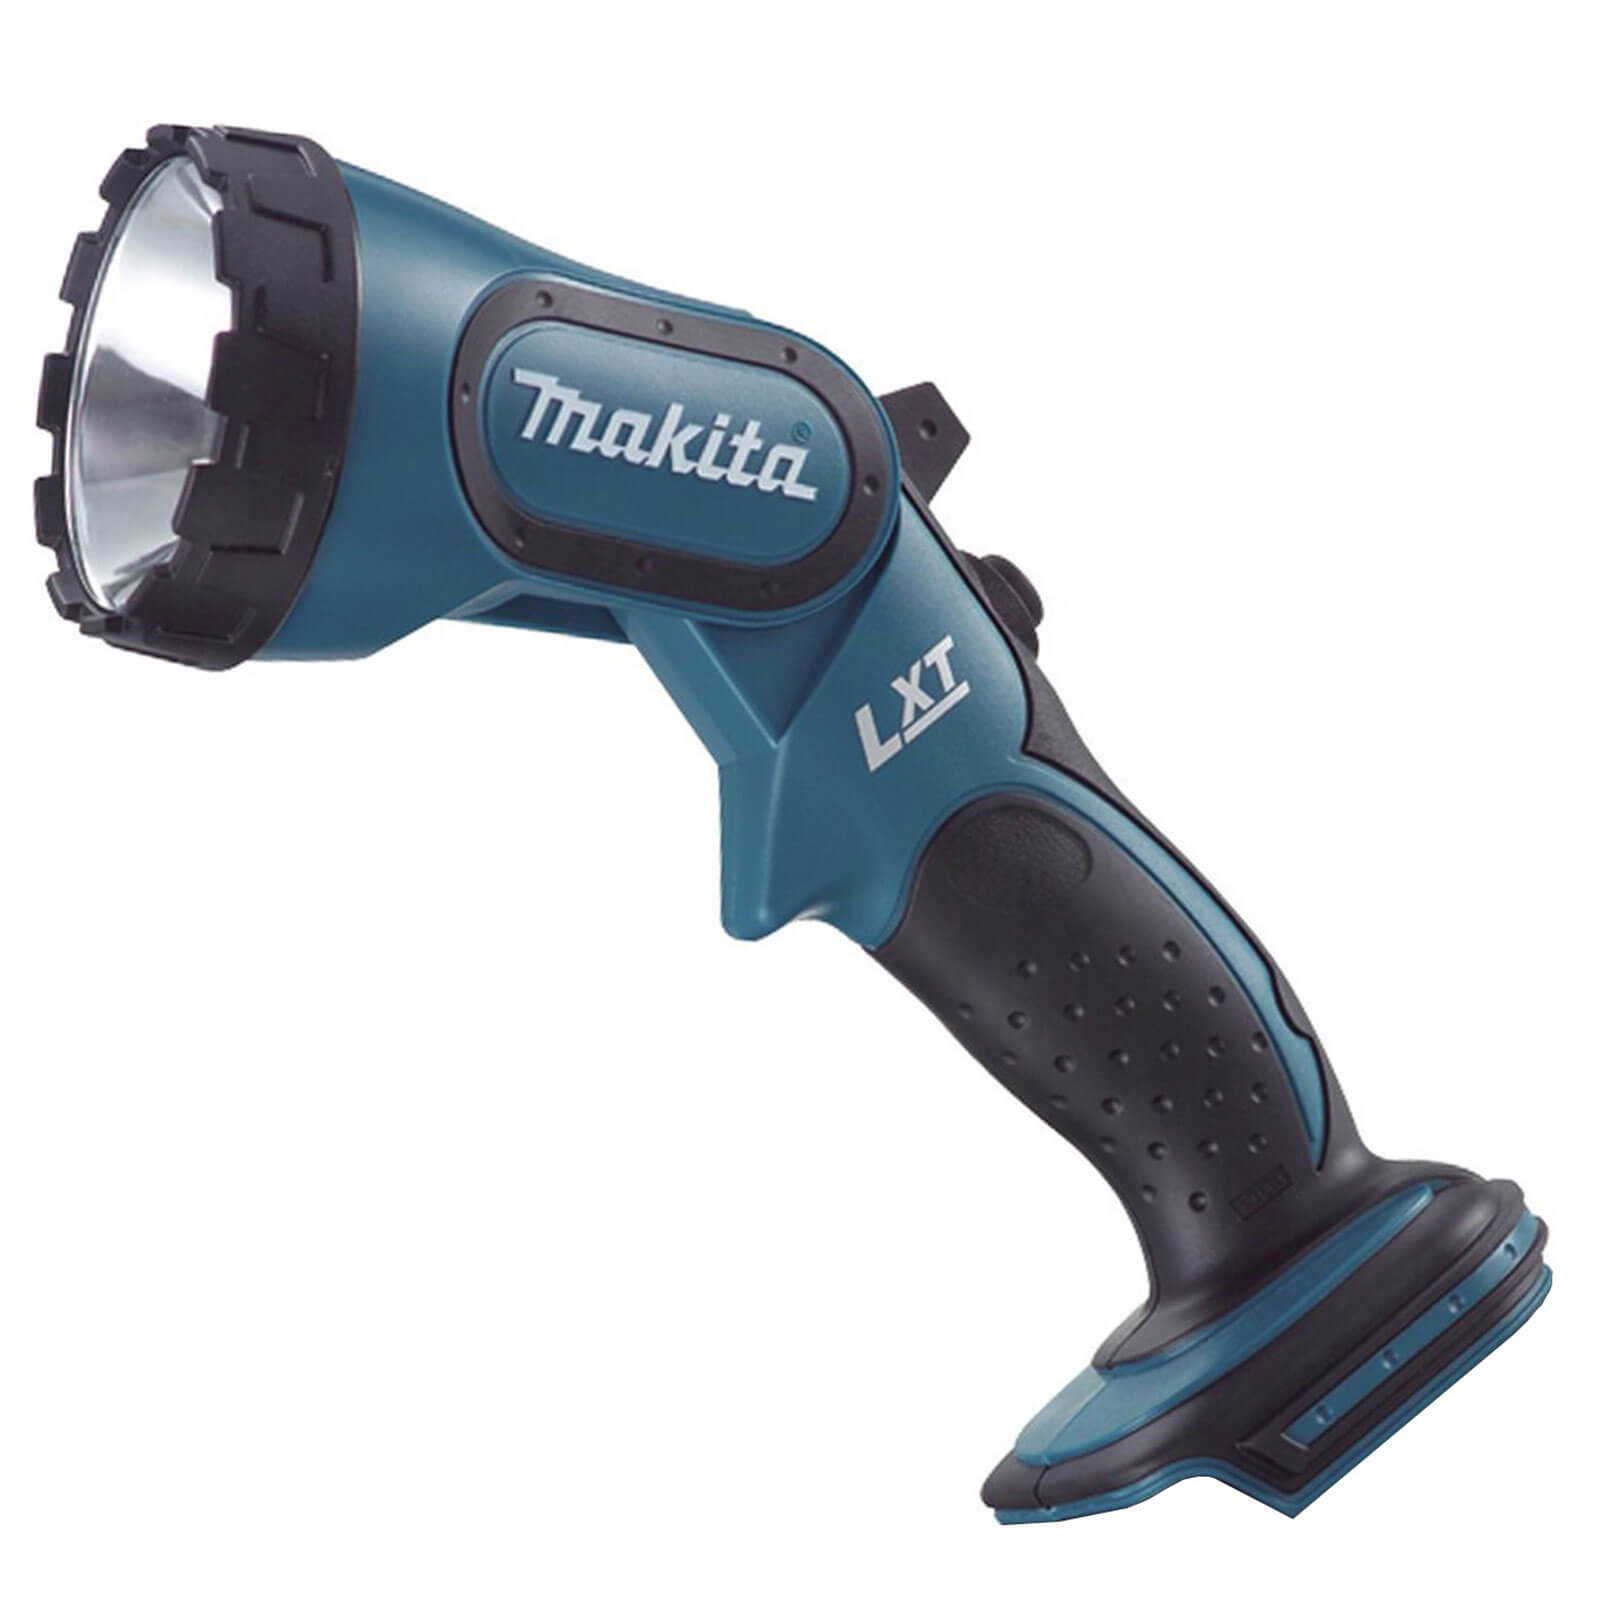 Image of Makita BML185 18v Cordless Torch without Battery Or Charger